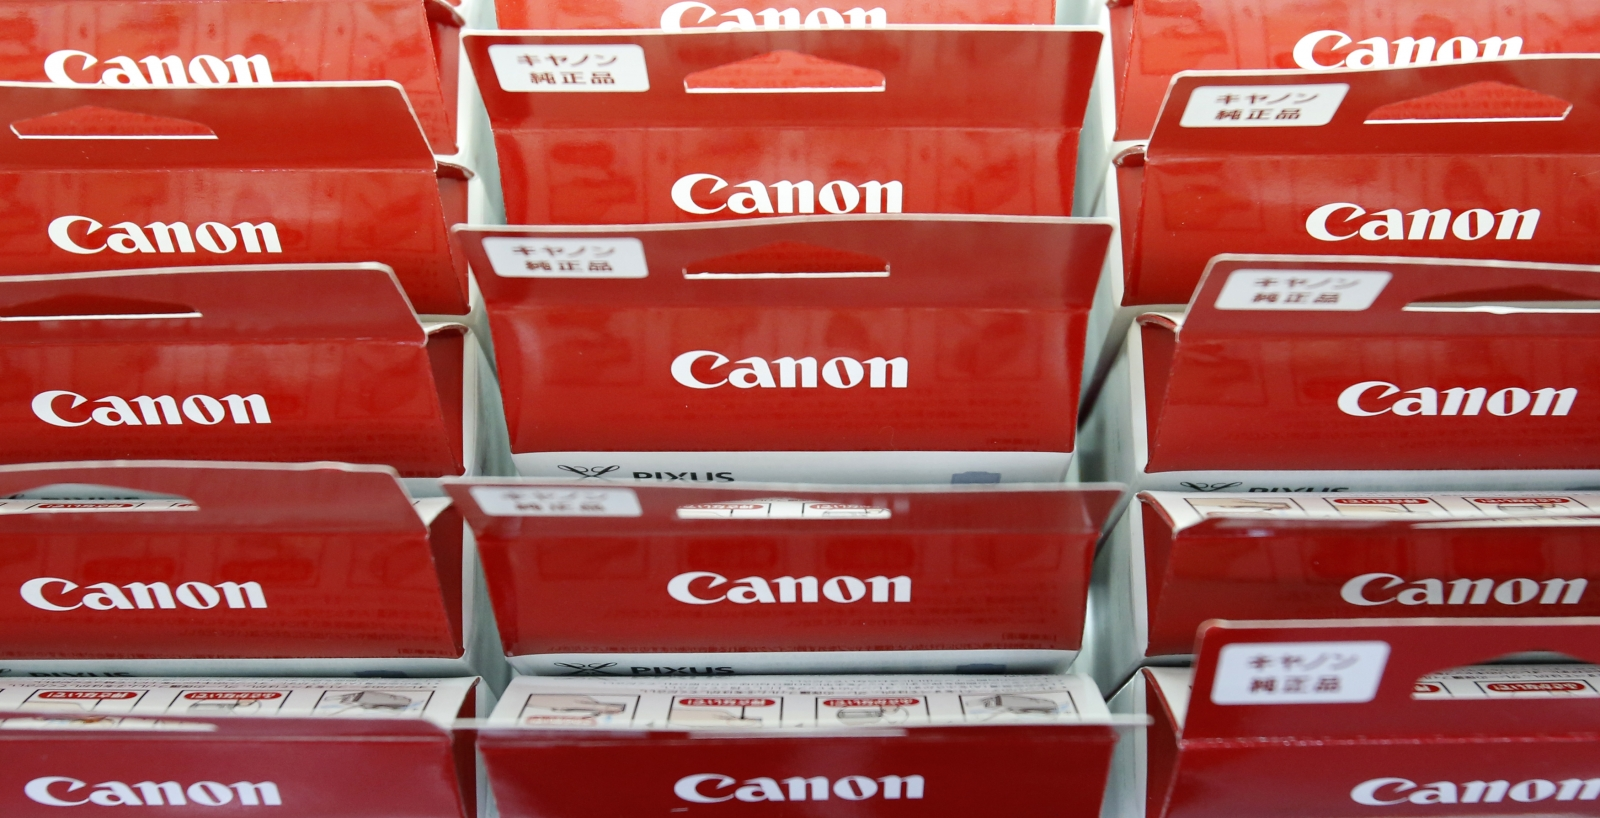 Canon's logos are pictured on printer ink packages displayed at an electronics retail store in Tokyo